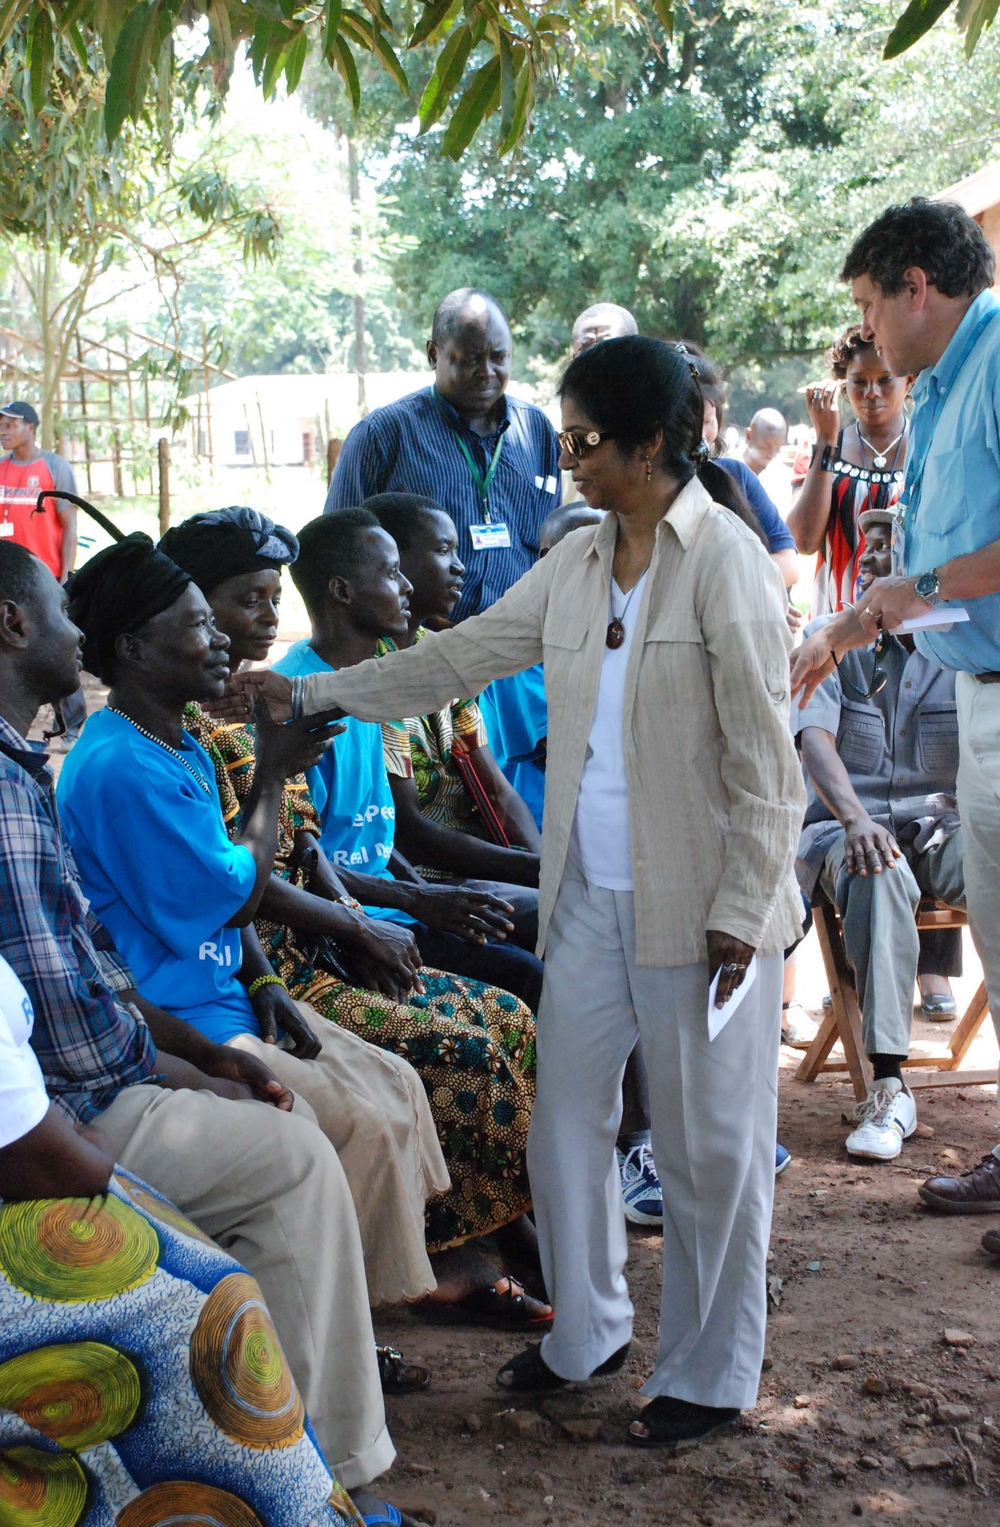 The UN Humanitarian Coordinator in Sudan Ameerah Haq greets Southern Sudanese who have fled their homes during raids by Lord's Resistance Army rebels. Haq visited the town of Yambio, state capital of Western Equatoria, in this Friday 11 September photog